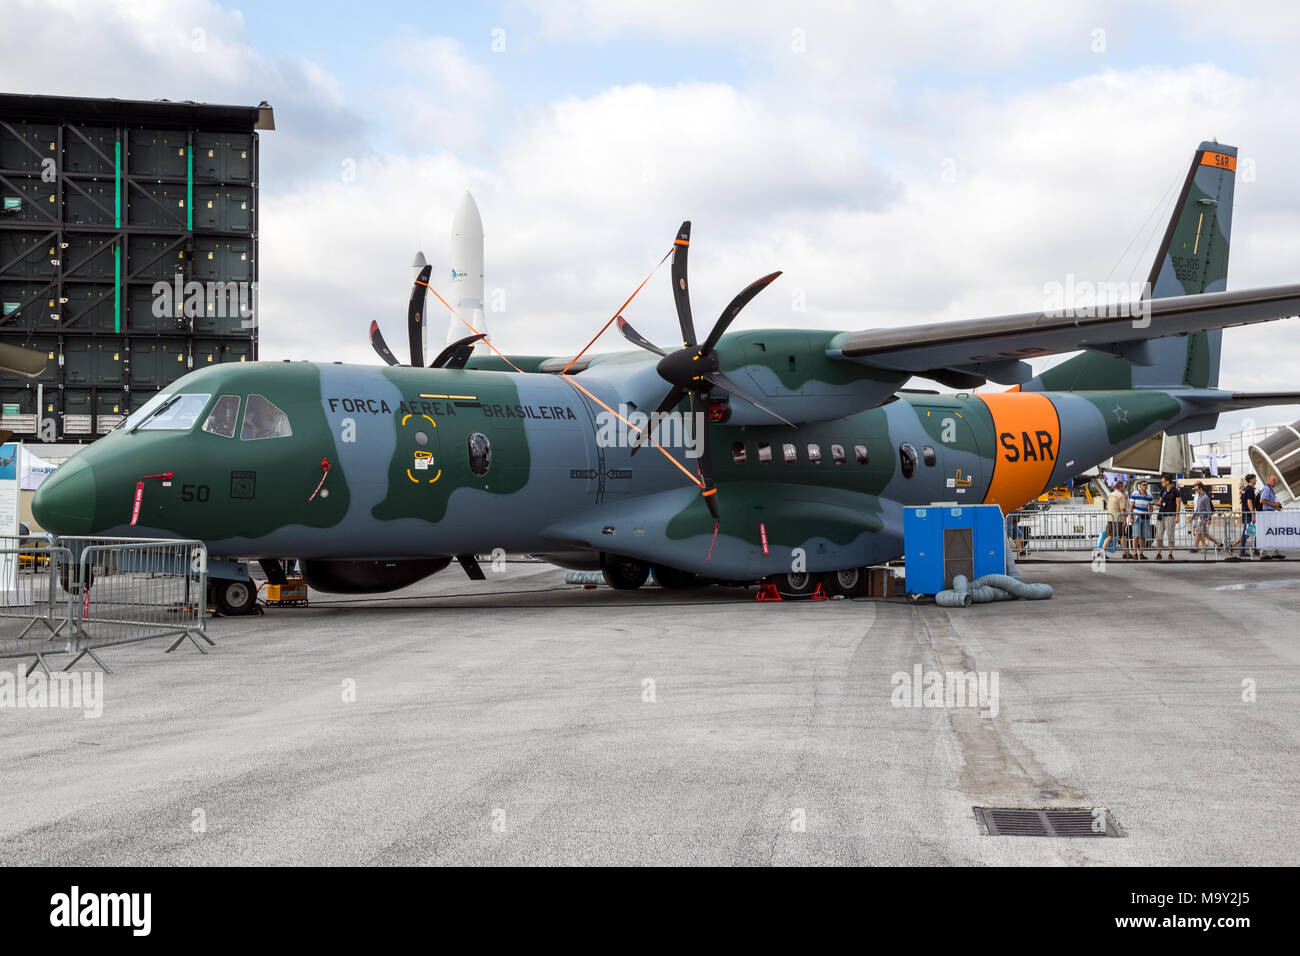 PARIS, FRANCE - JUN 23, 2017: Brazilian Air Force Casa SC-105 (Casa C-295) airplane in Search And Rescue configuration on display at the Paris Air Sho - Stock Image